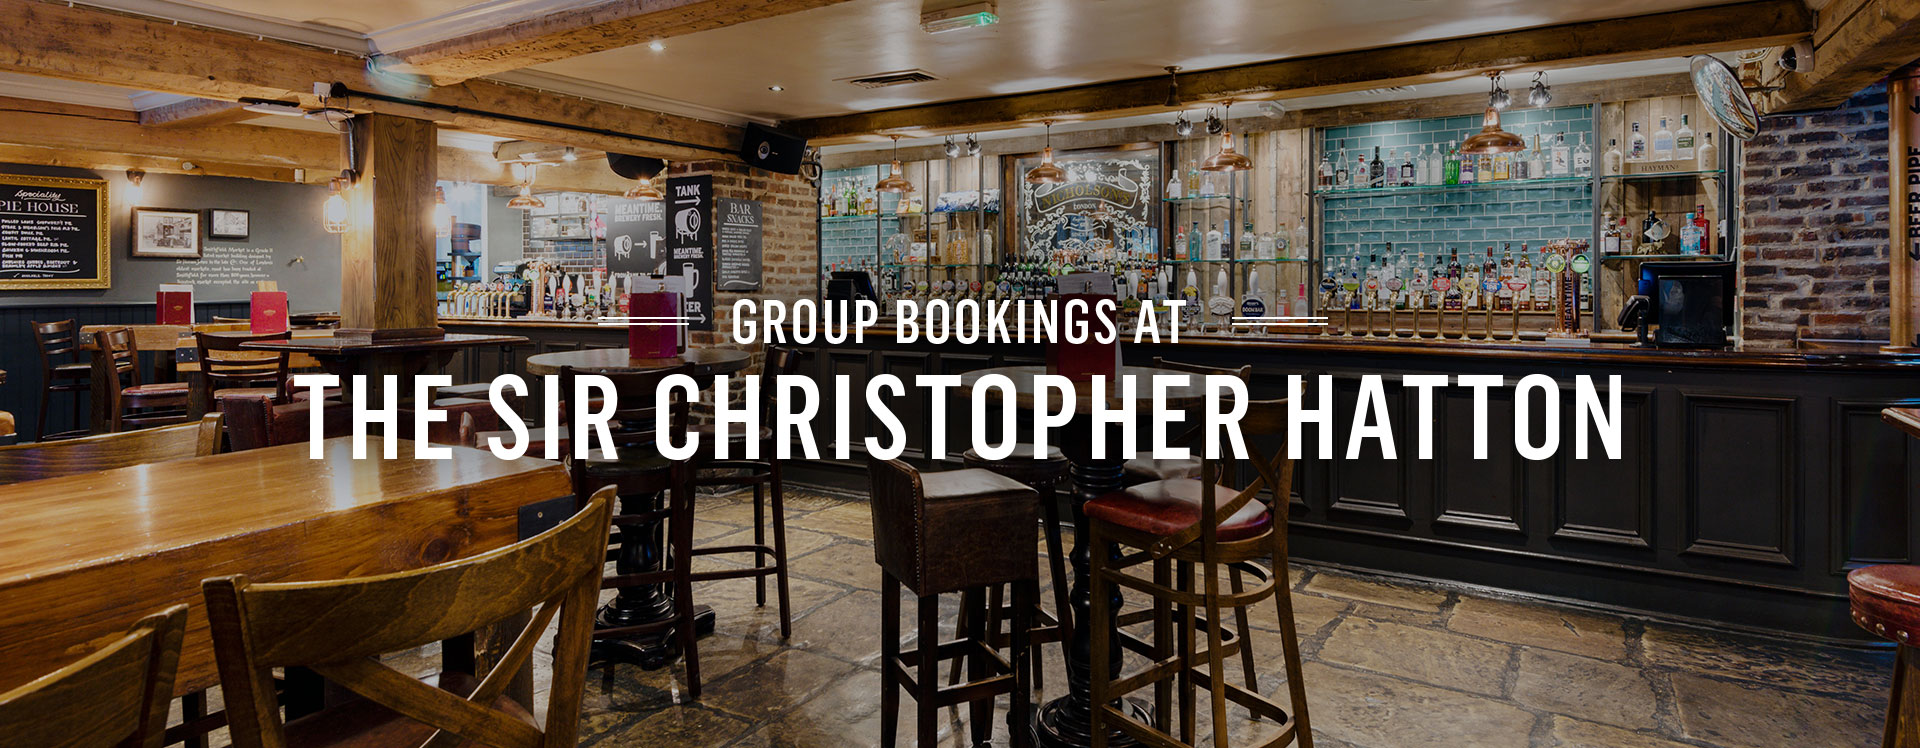 Group Bookings at The Sir Christopher Hatton